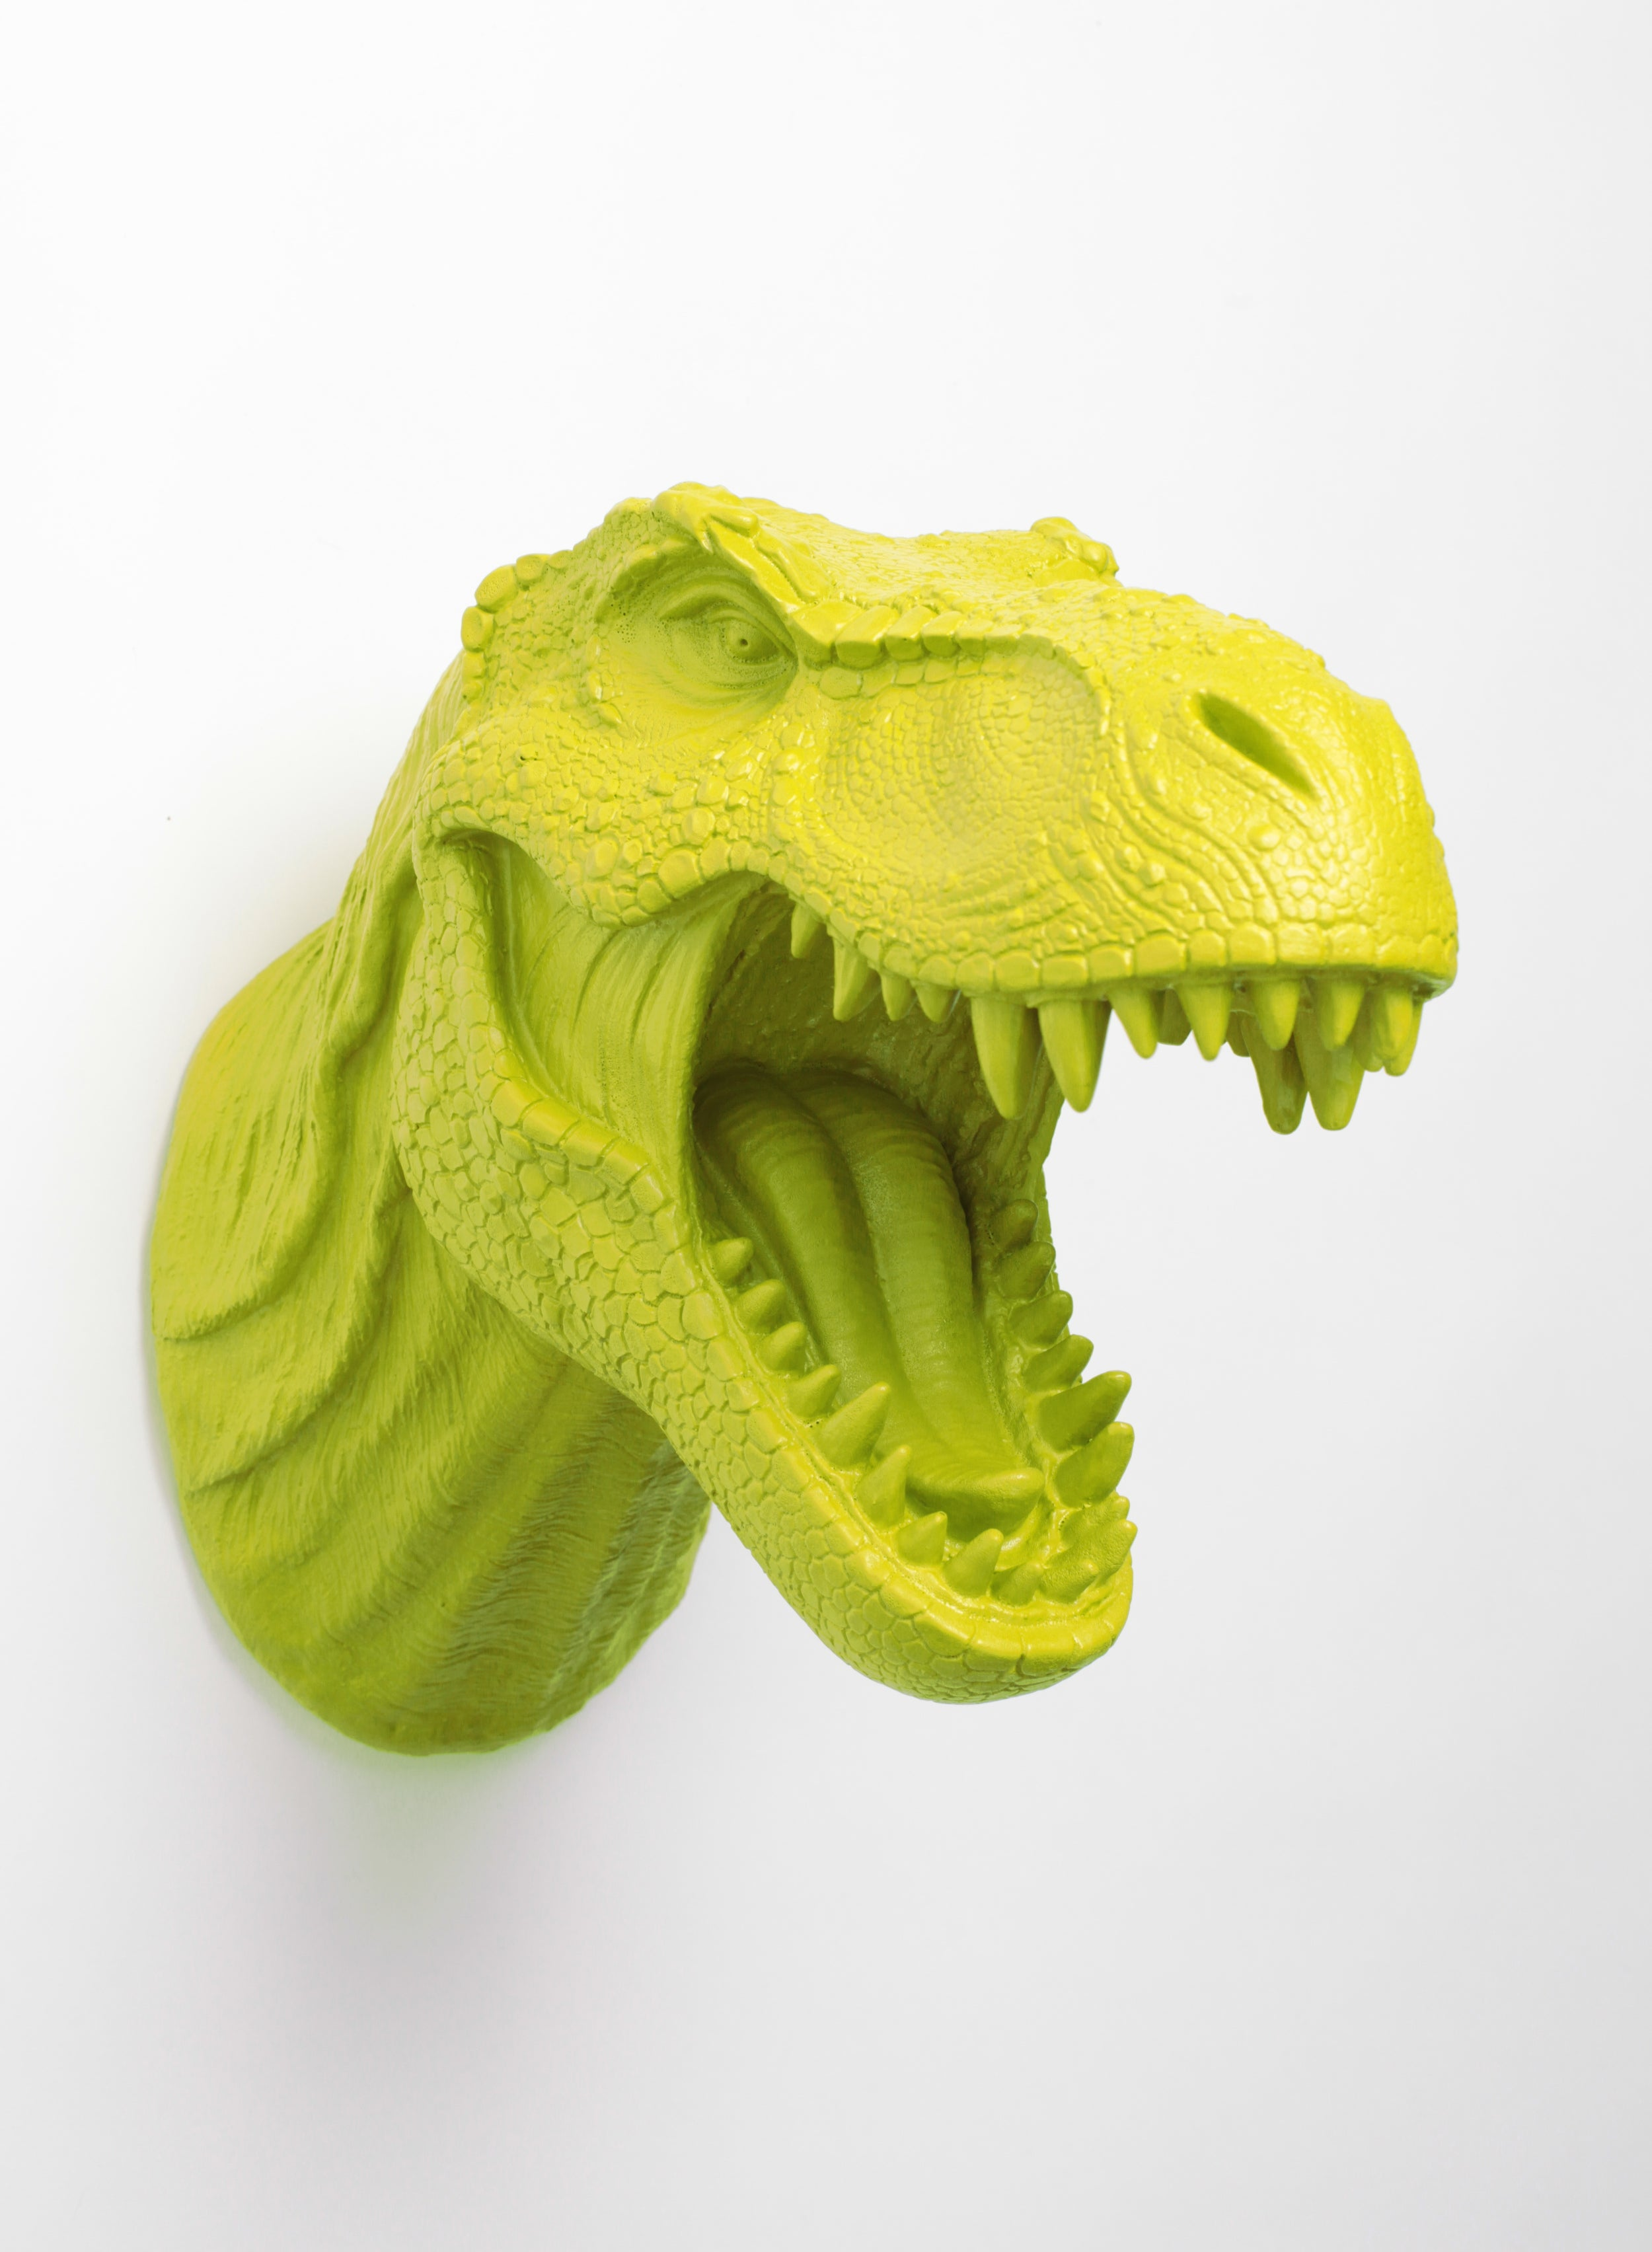 The Mason, Mantis-Green Dinosaur Head Wall Mount – White Faux Taxidermy